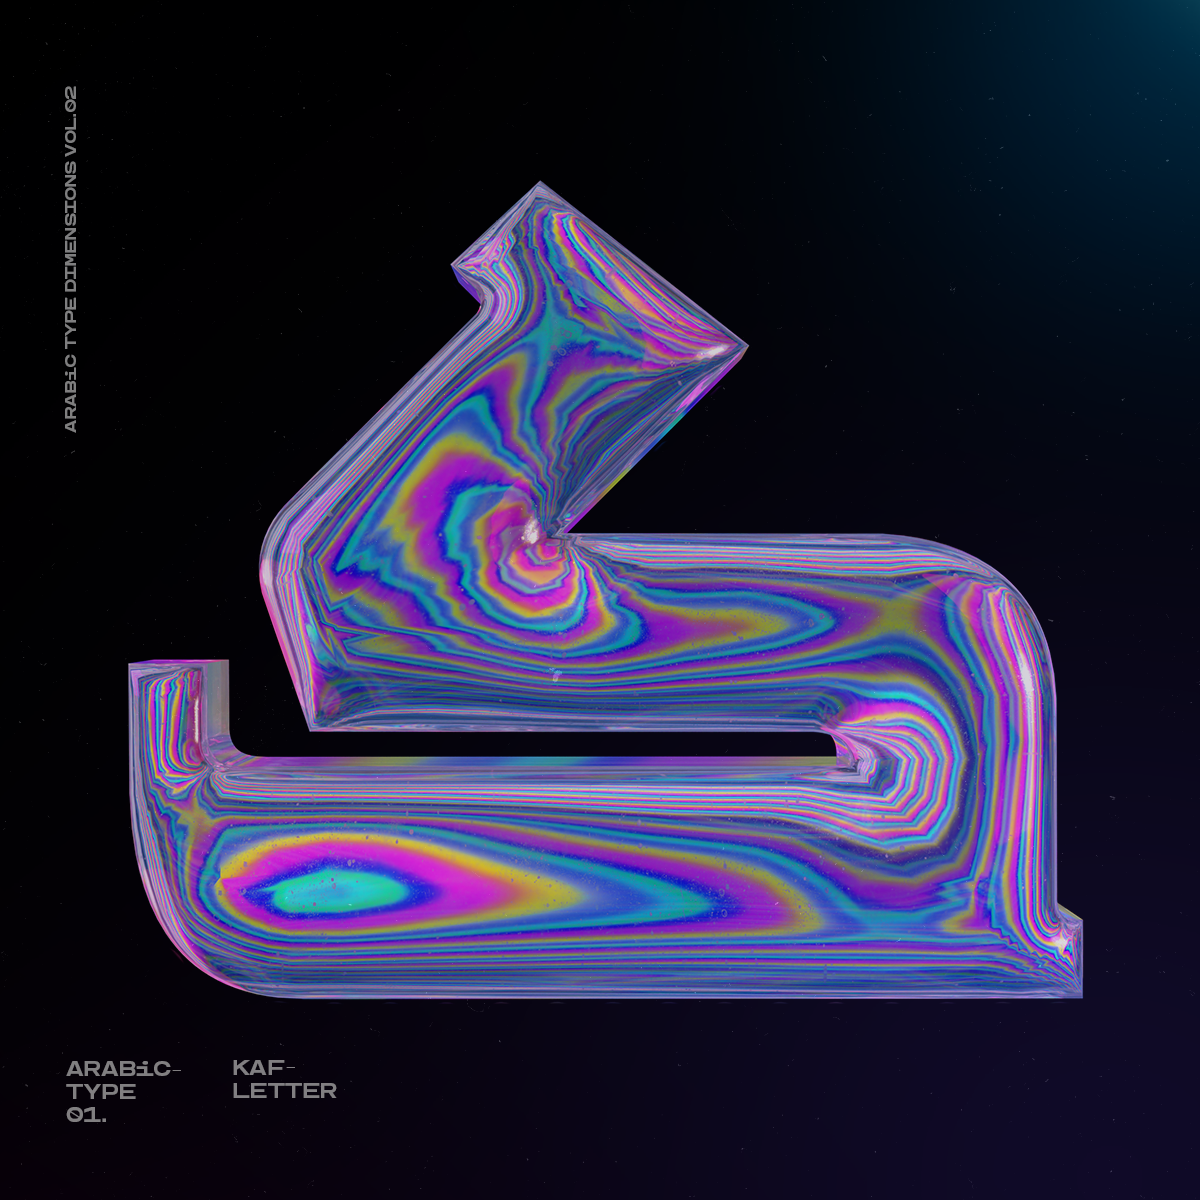 Ibrahim Hamdi 3D type inspired by abstract 3D art